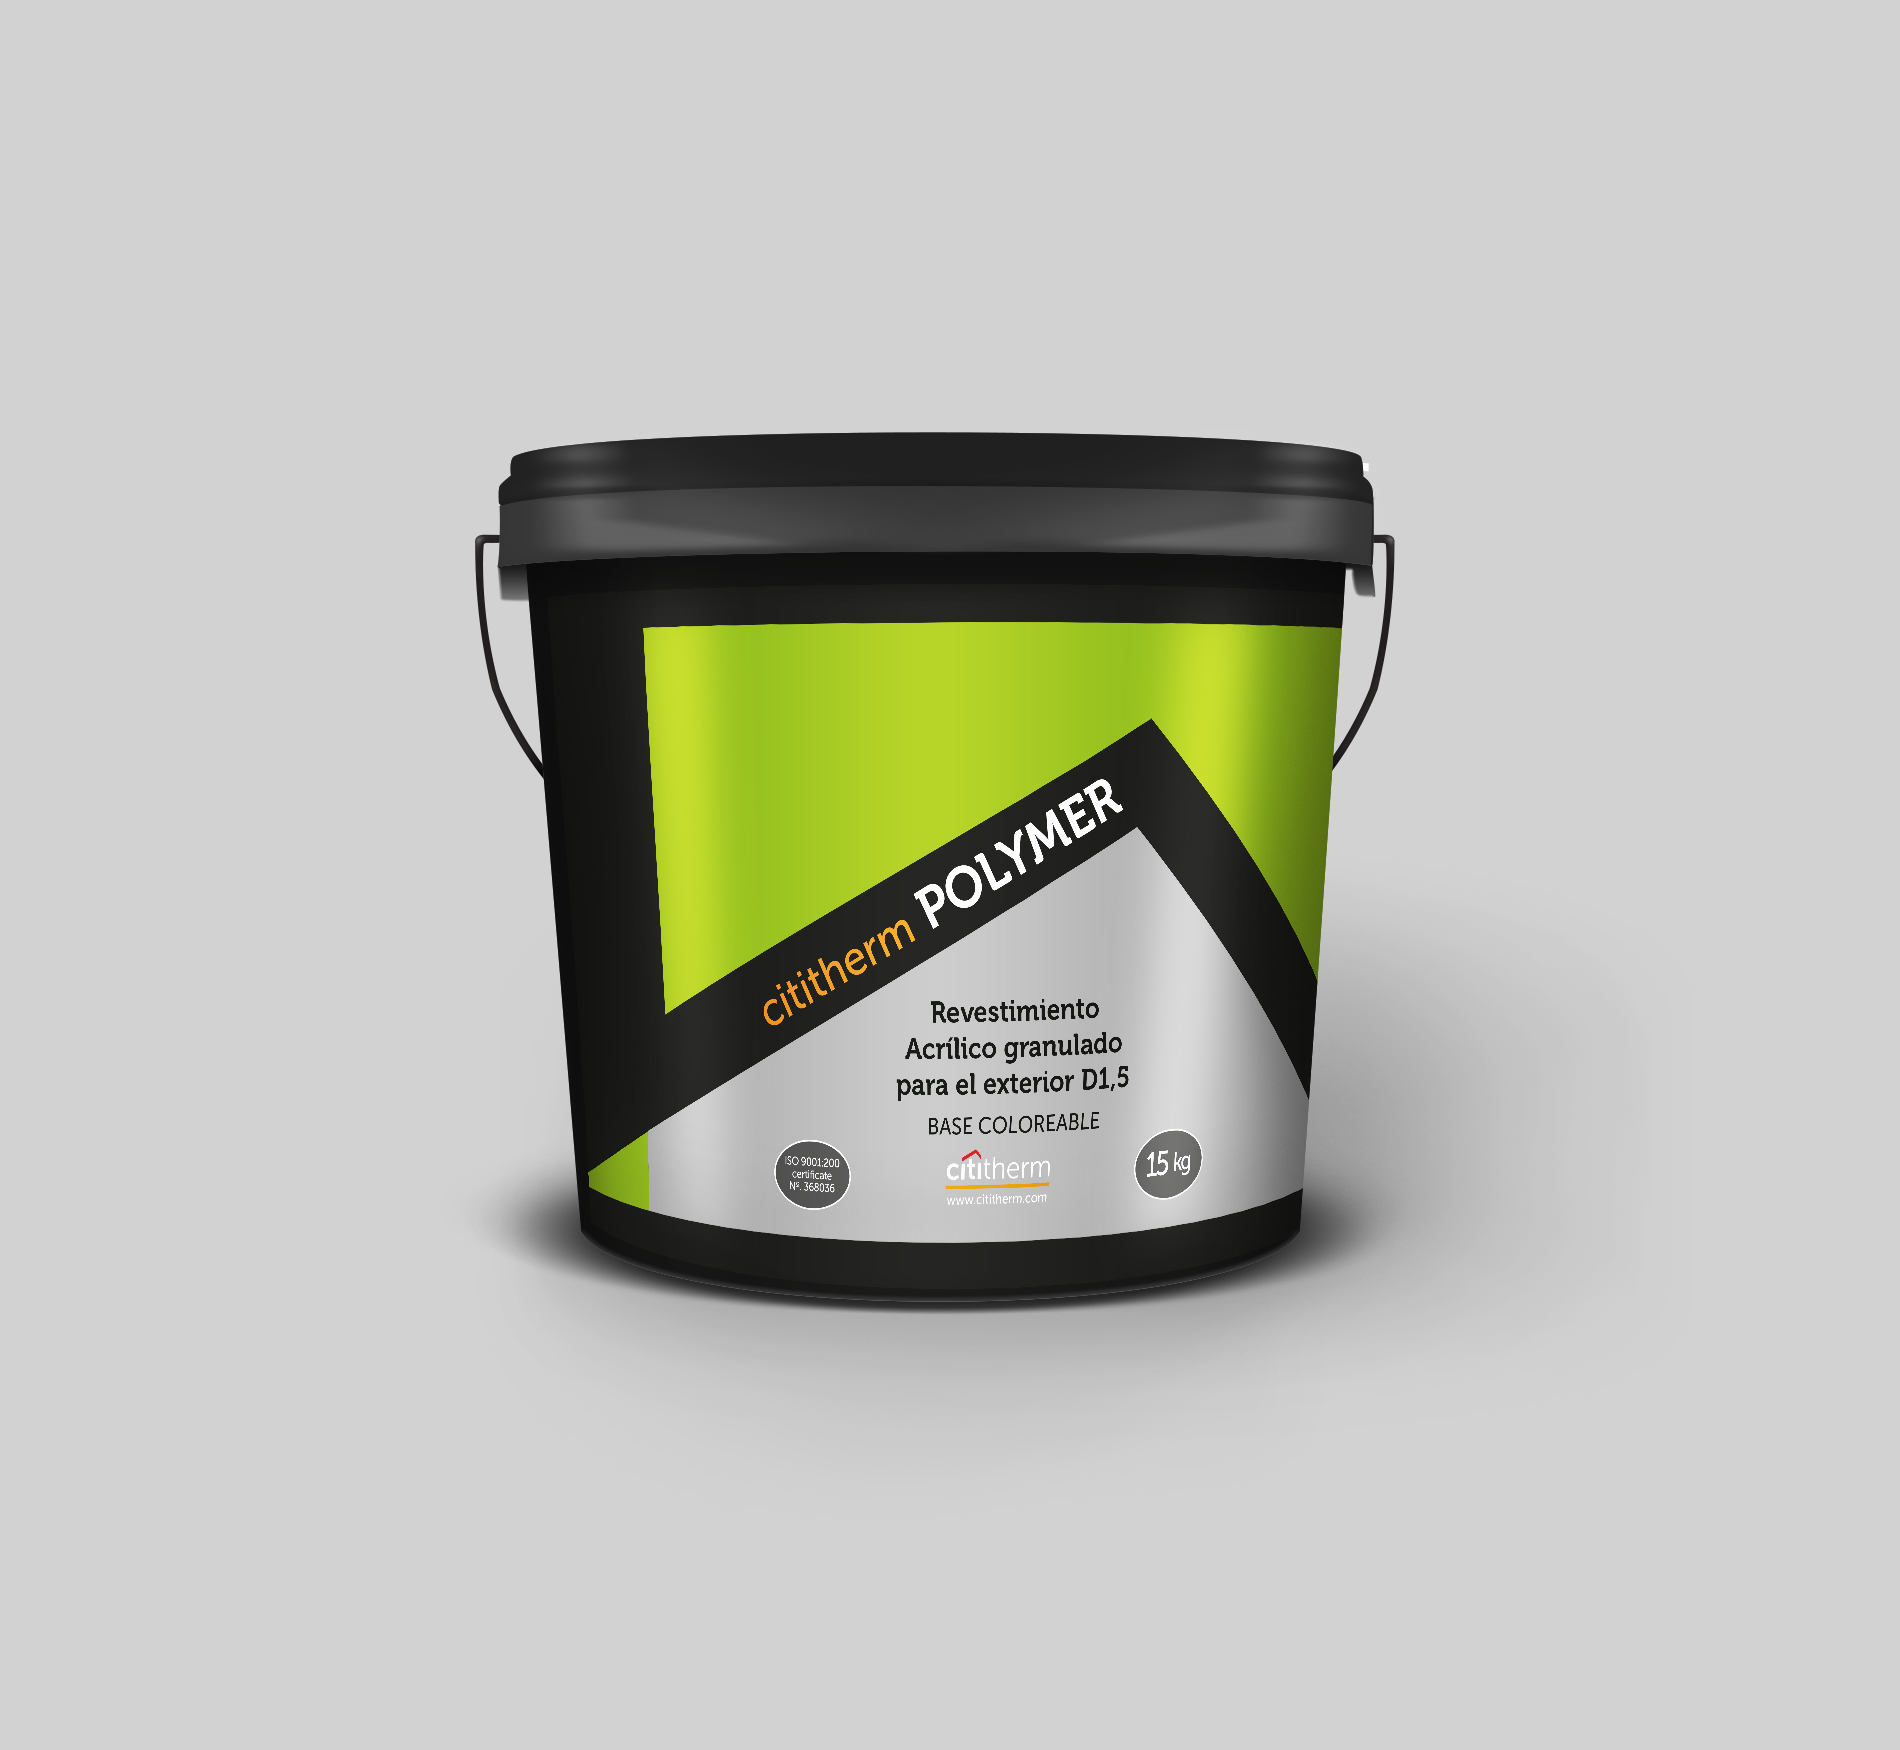 Paint Bucket Mockup - Premium Kit